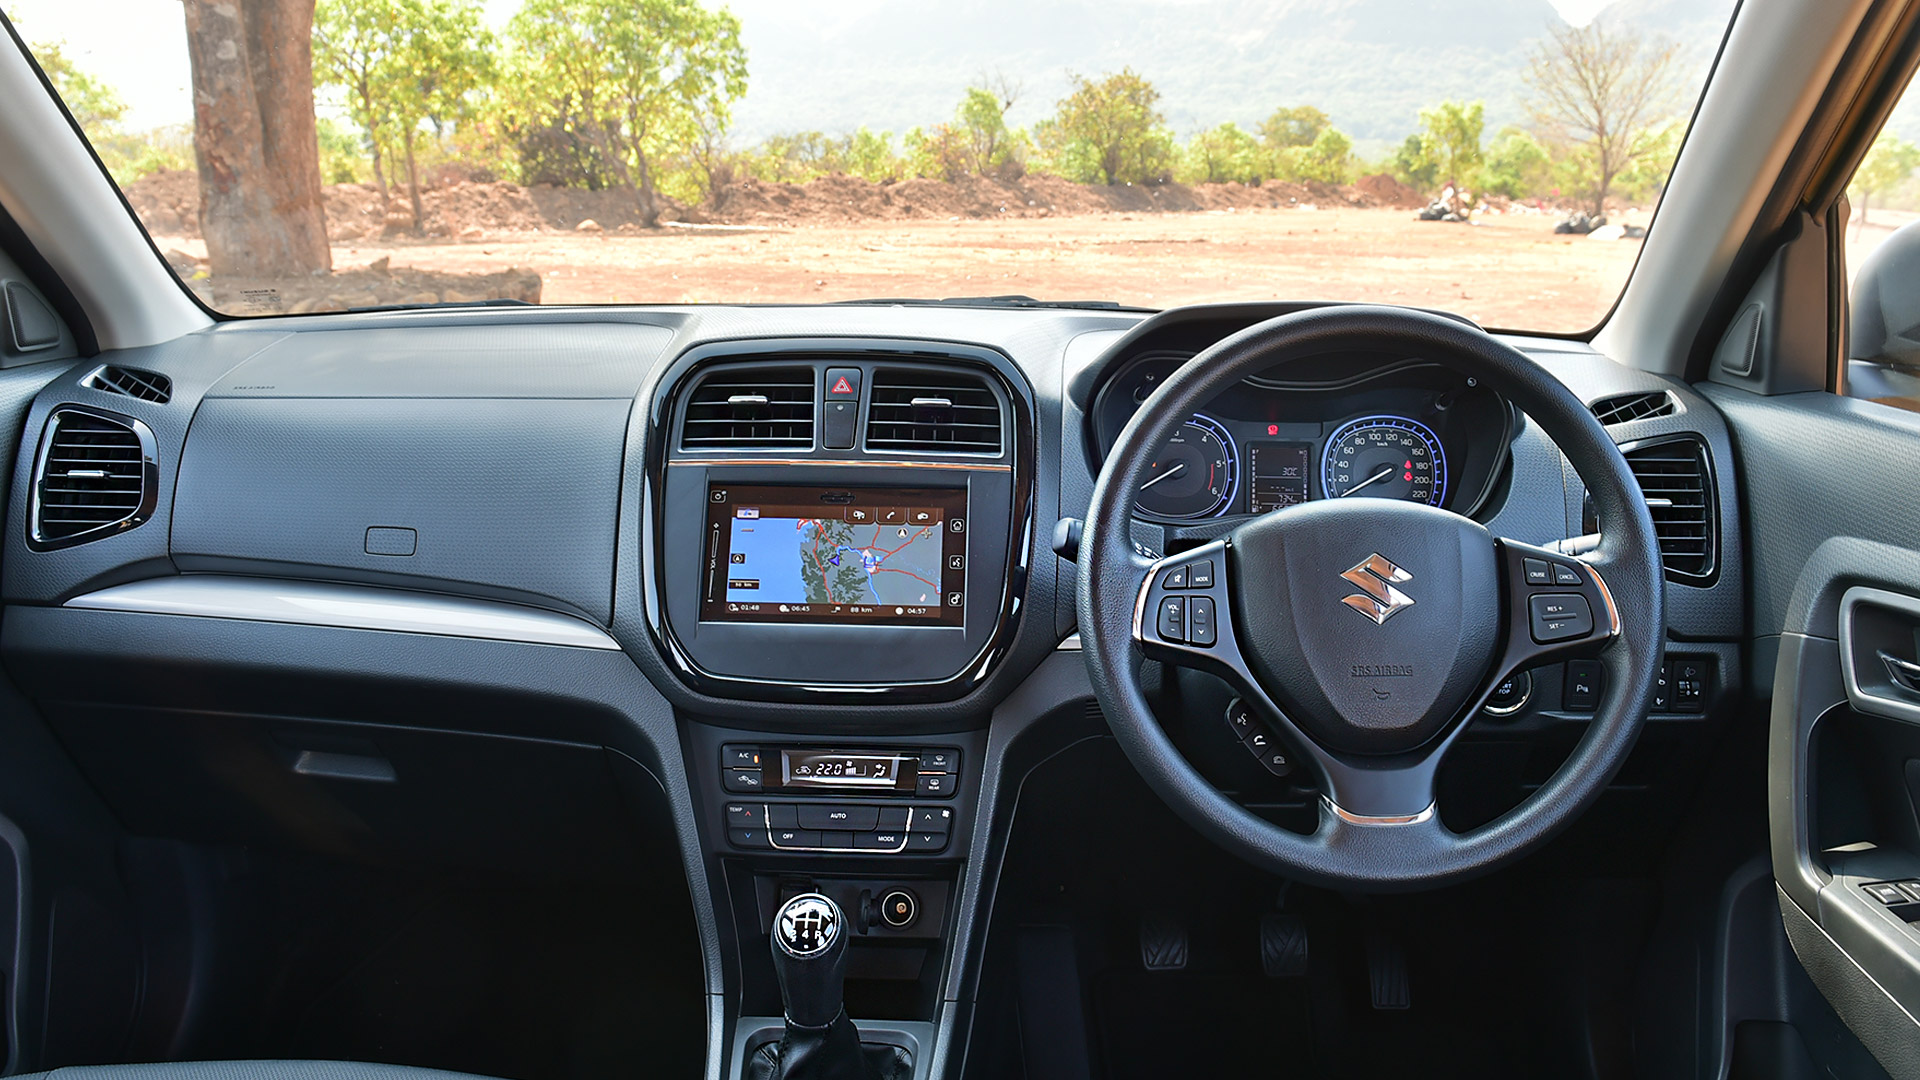 maruti suzuki vitara brezza 2016 zdi interior car photos overdrive. Black Bedroom Furniture Sets. Home Design Ideas